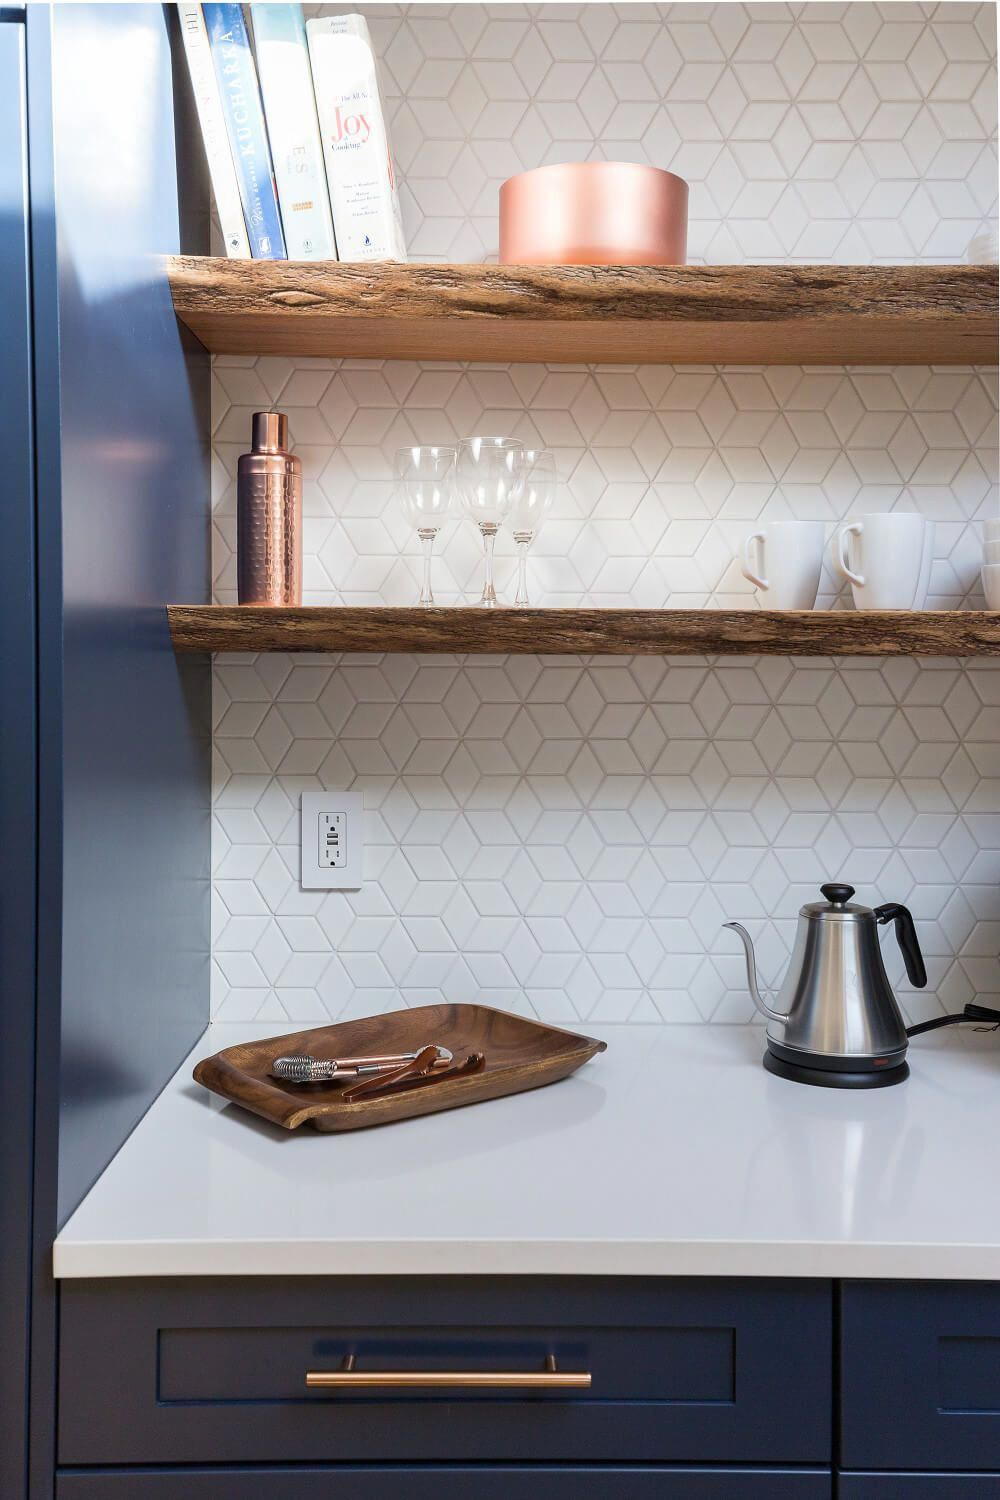 How To Optimize The Space Under The Bed Backsplash For White Cabinets Kitchen Tiles Backsplash Outdoor Kitchen Countertops